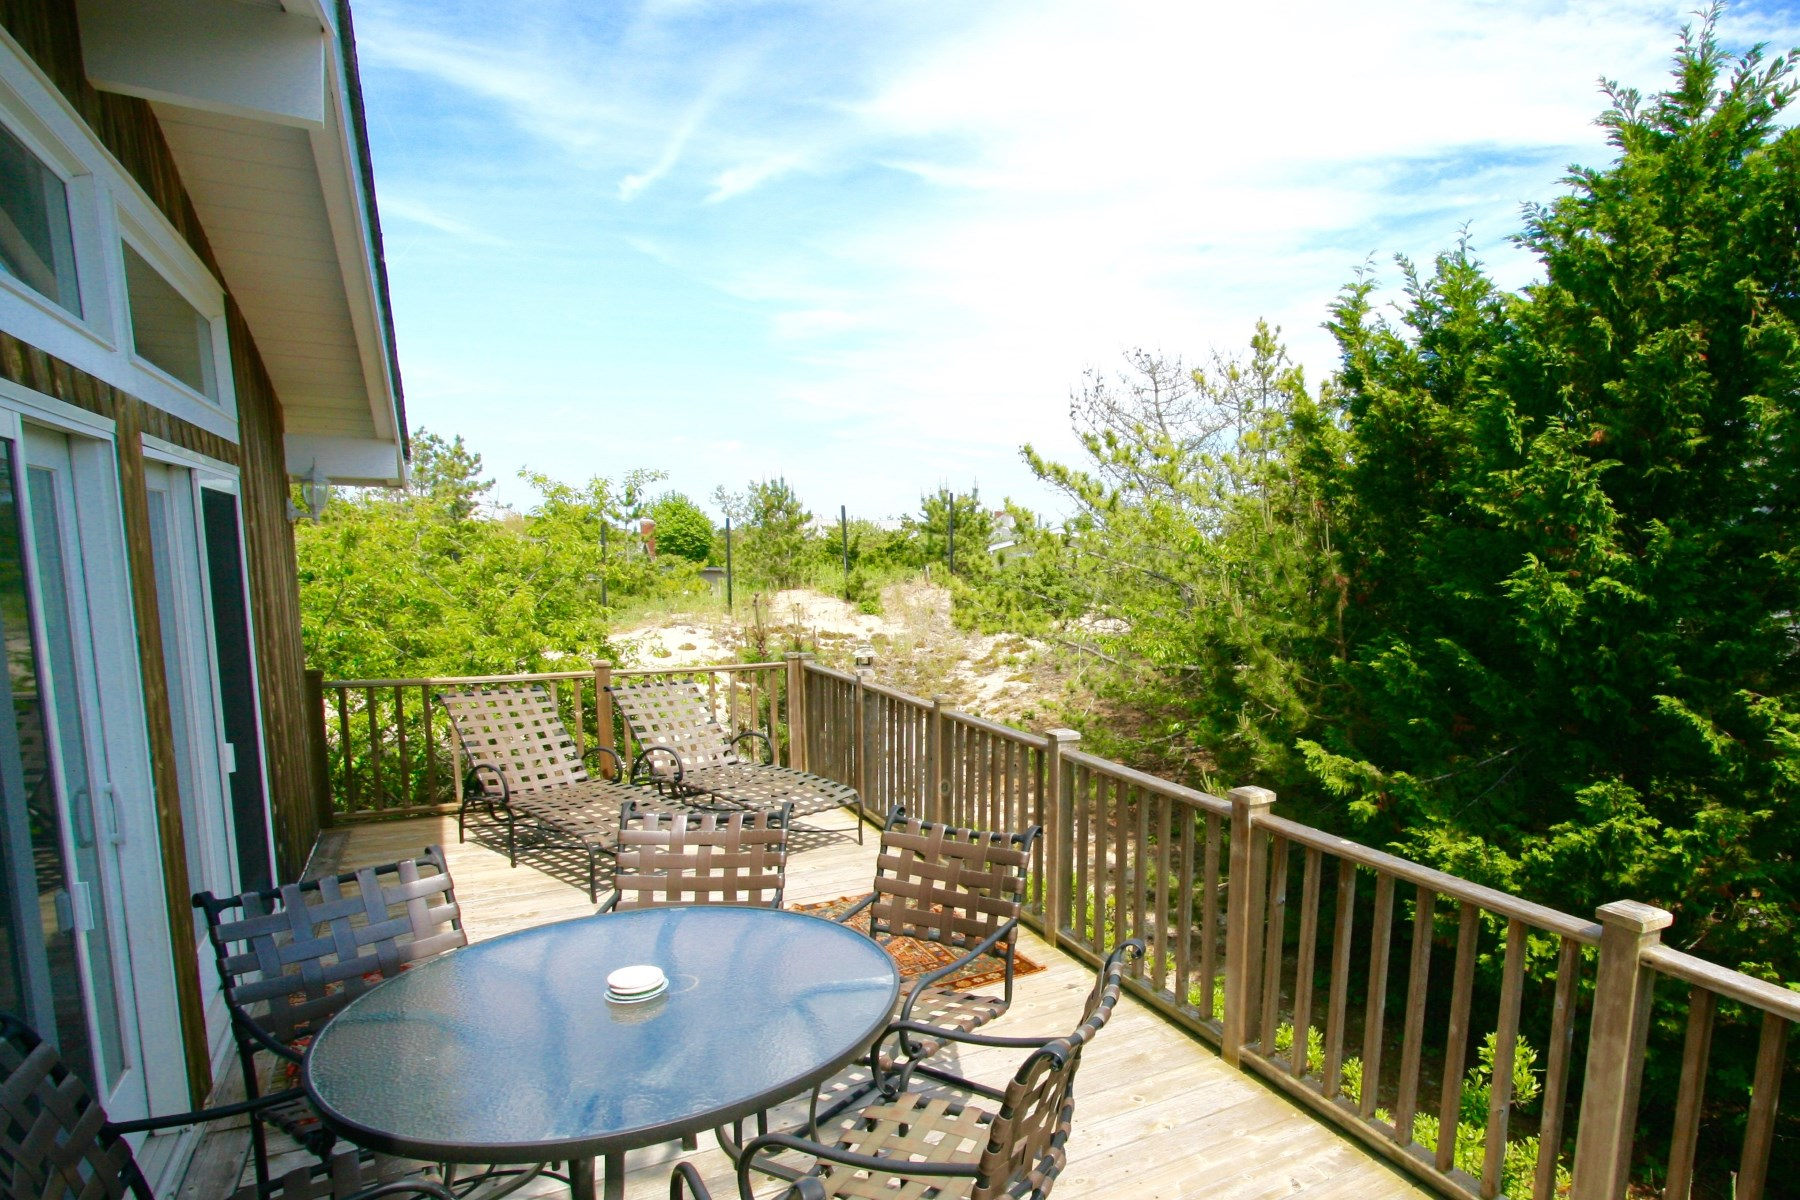 Single Family Home for Rent at Amagansett Dunes with Pool 26 Ocean Lane Amagansett, New York 11930 United States